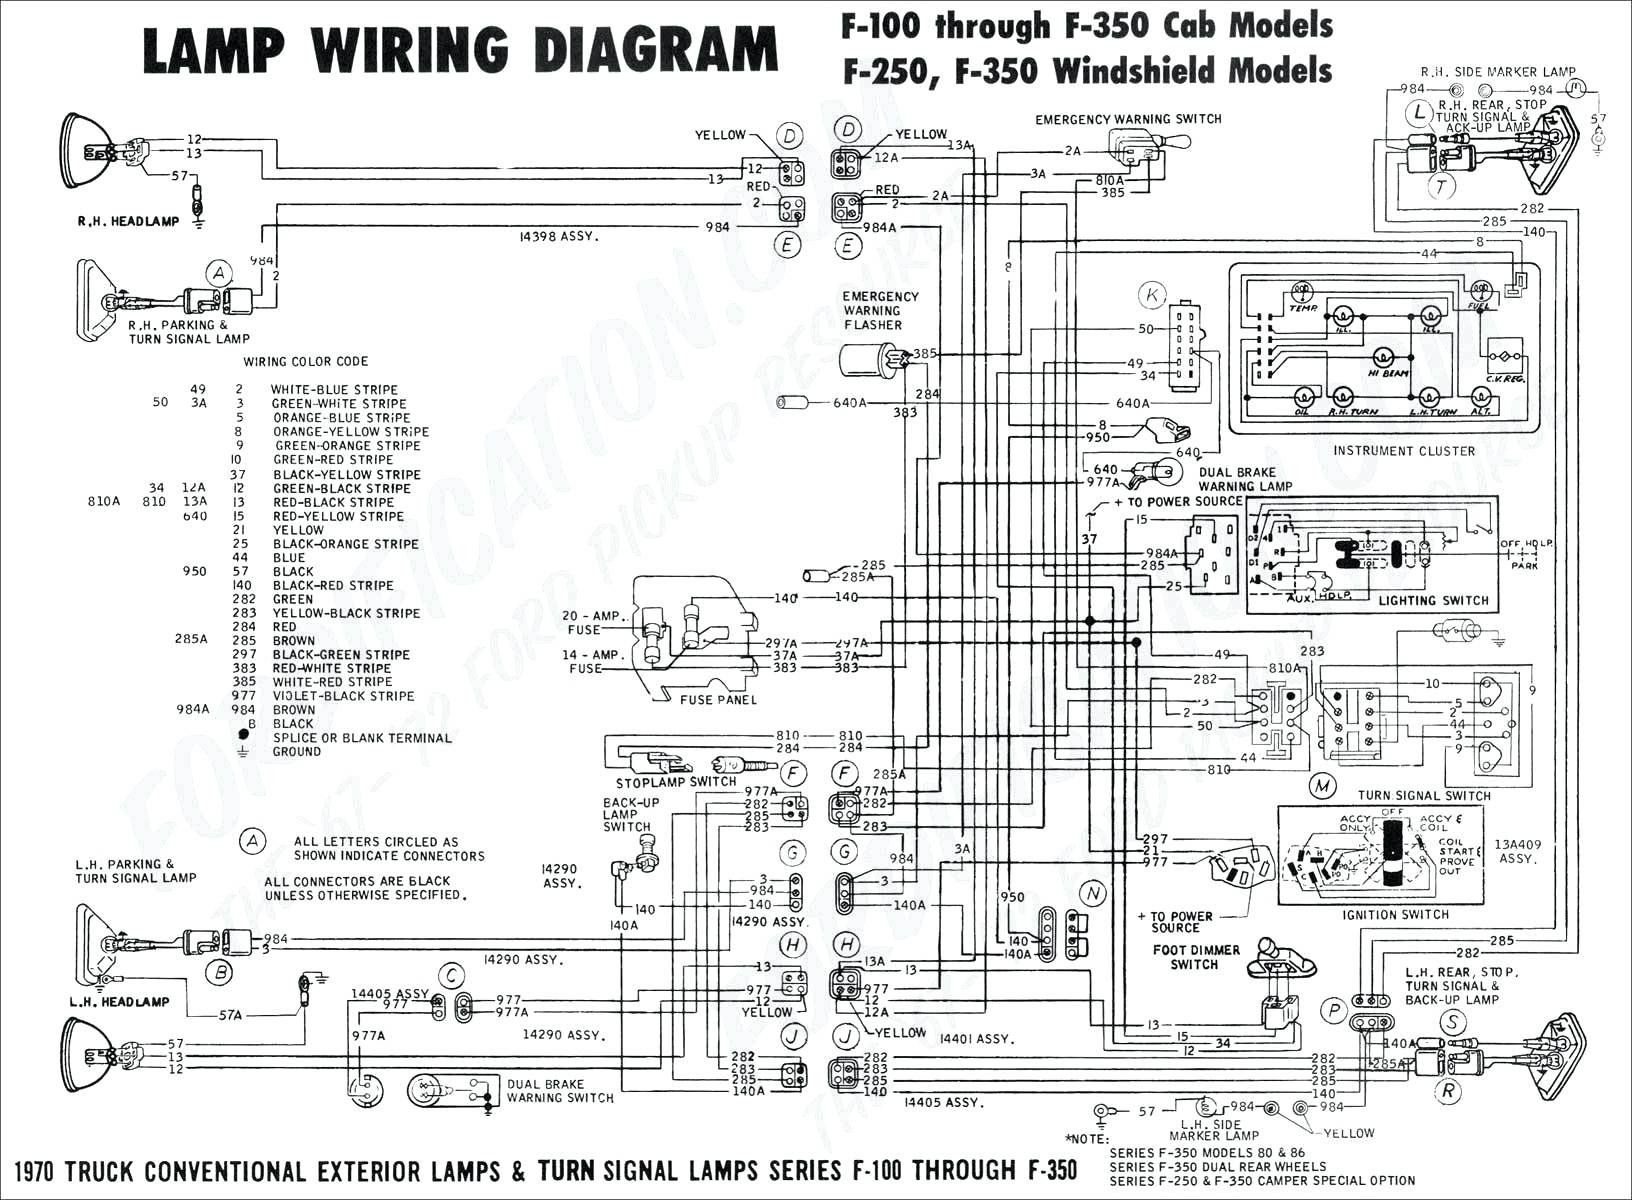 ford f 250 wiring diagram my wiring diagramford f250 wiring schematic wiring diagram data today ford f250 wiring diagram 2006 ford f 250